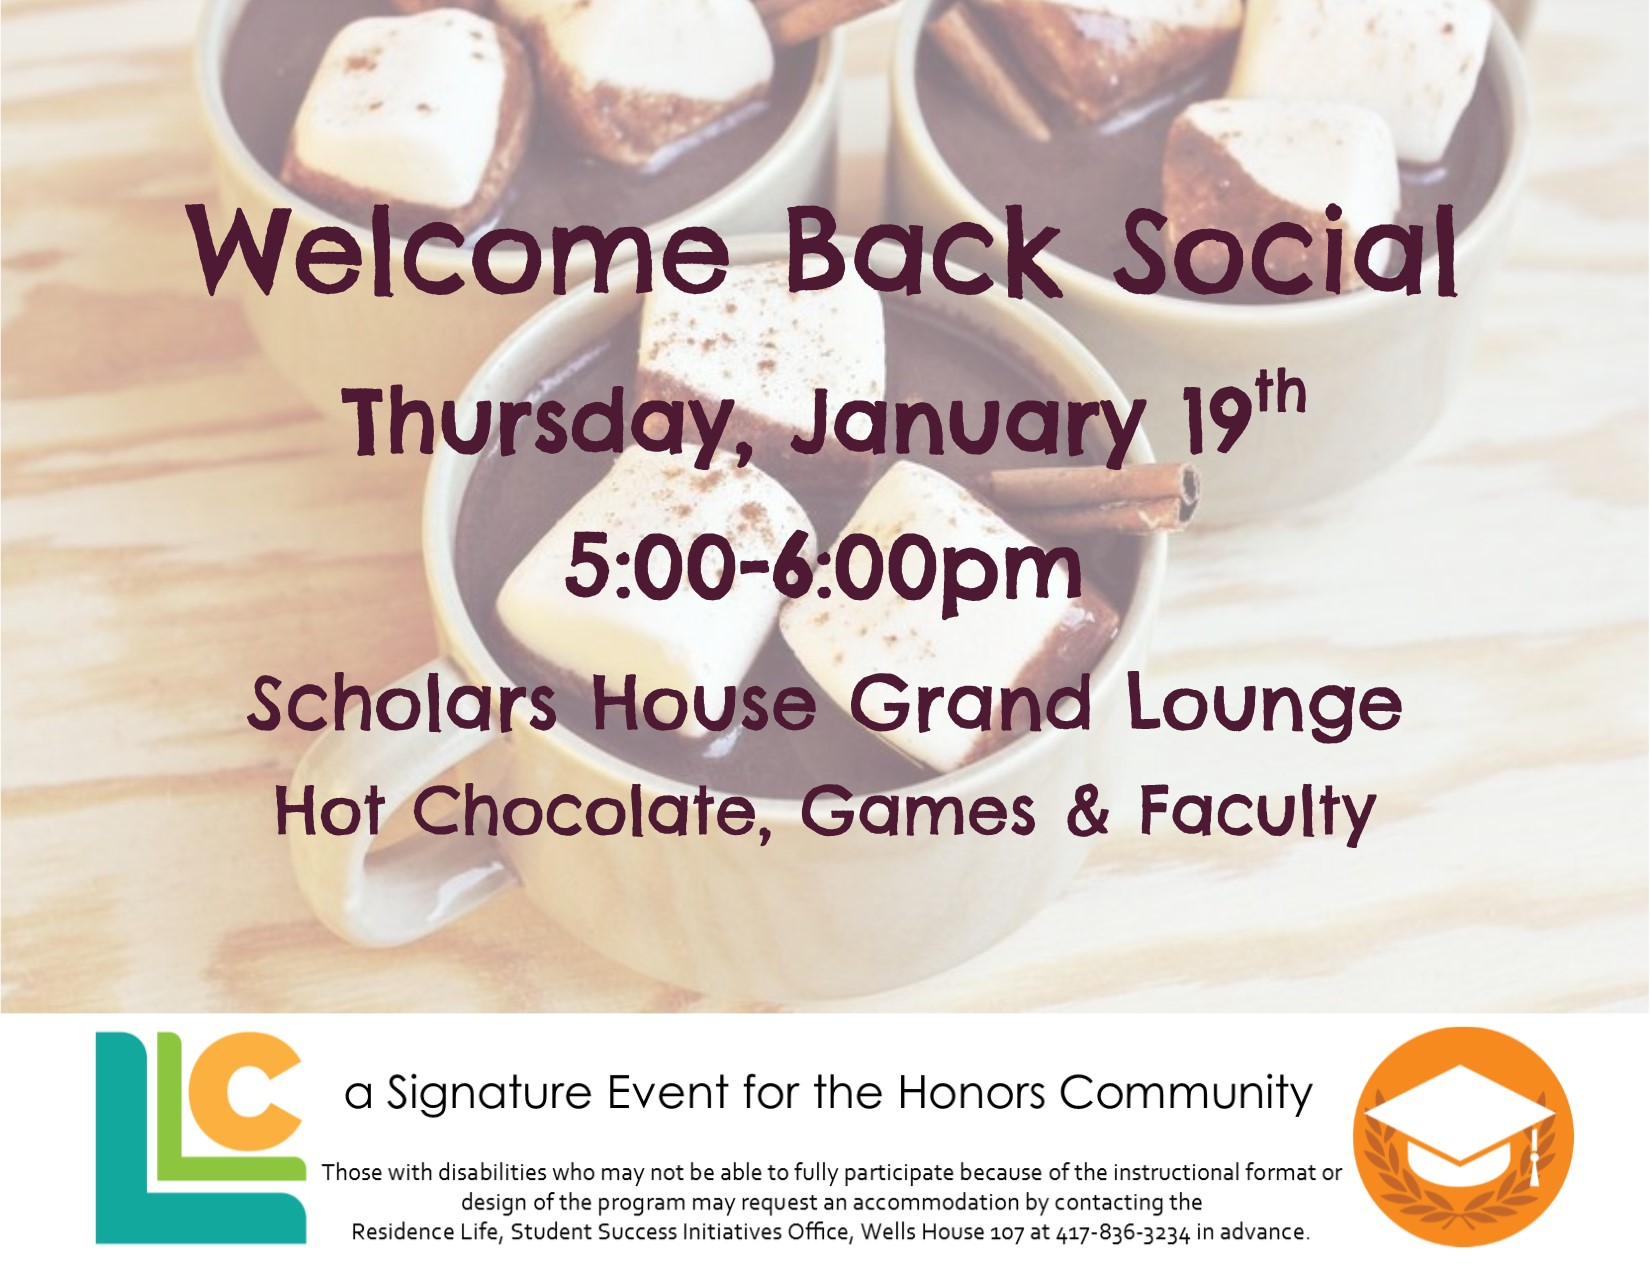 Honors Community Welcome Back Social